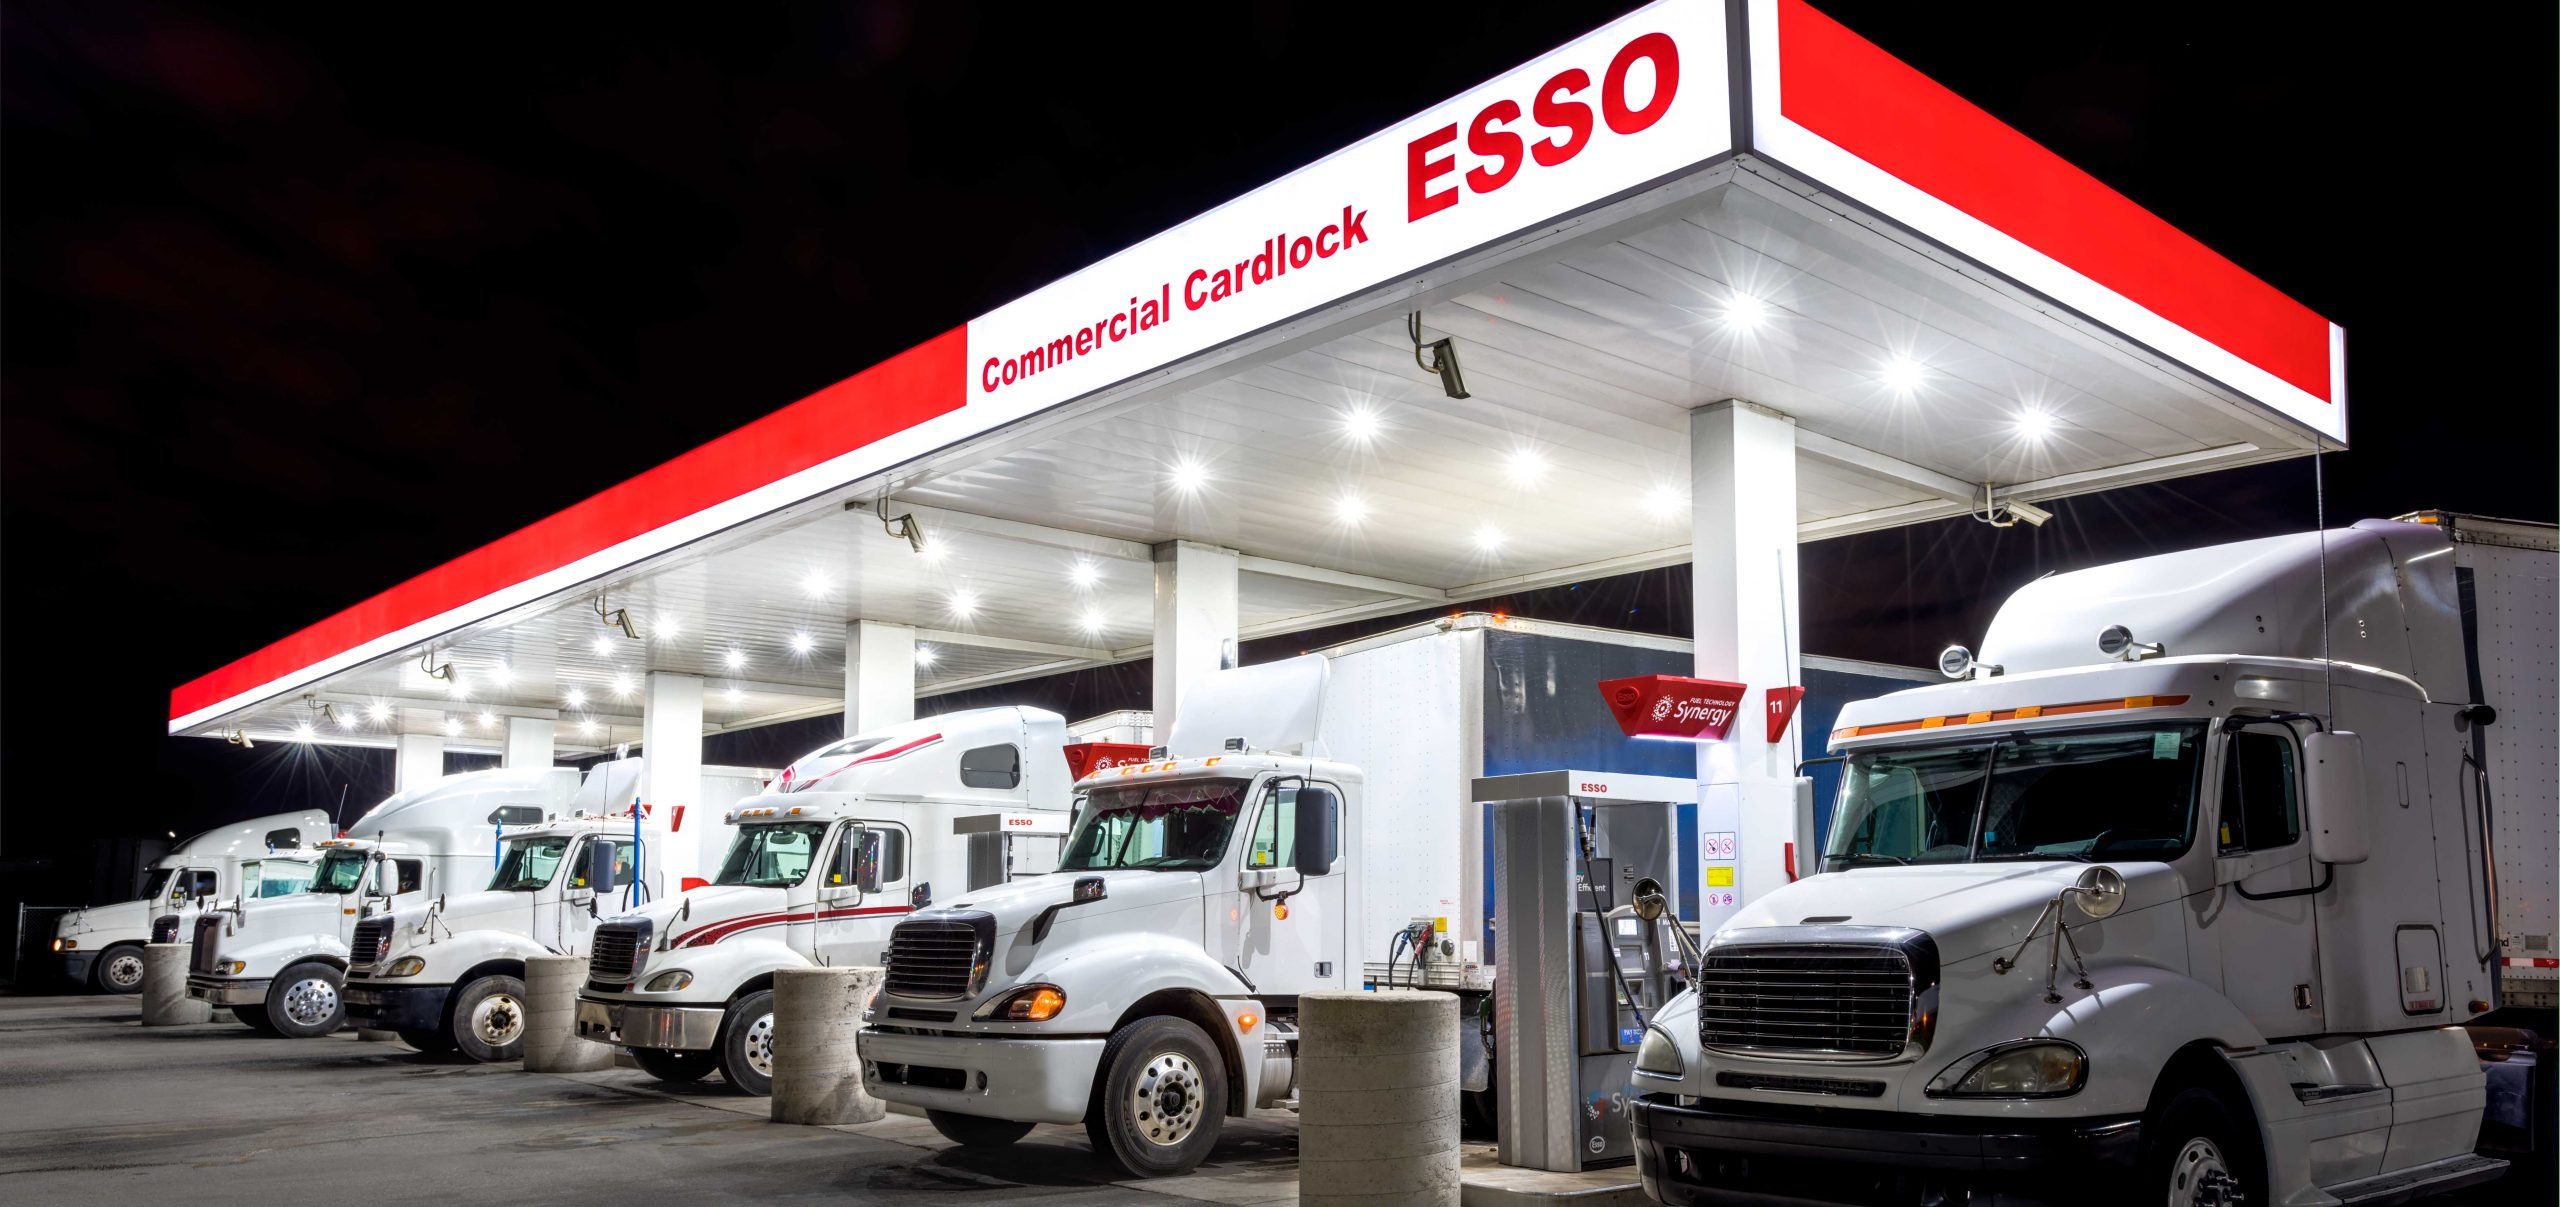 Photo of transport trucks parked under Esso cardlock canopy at night